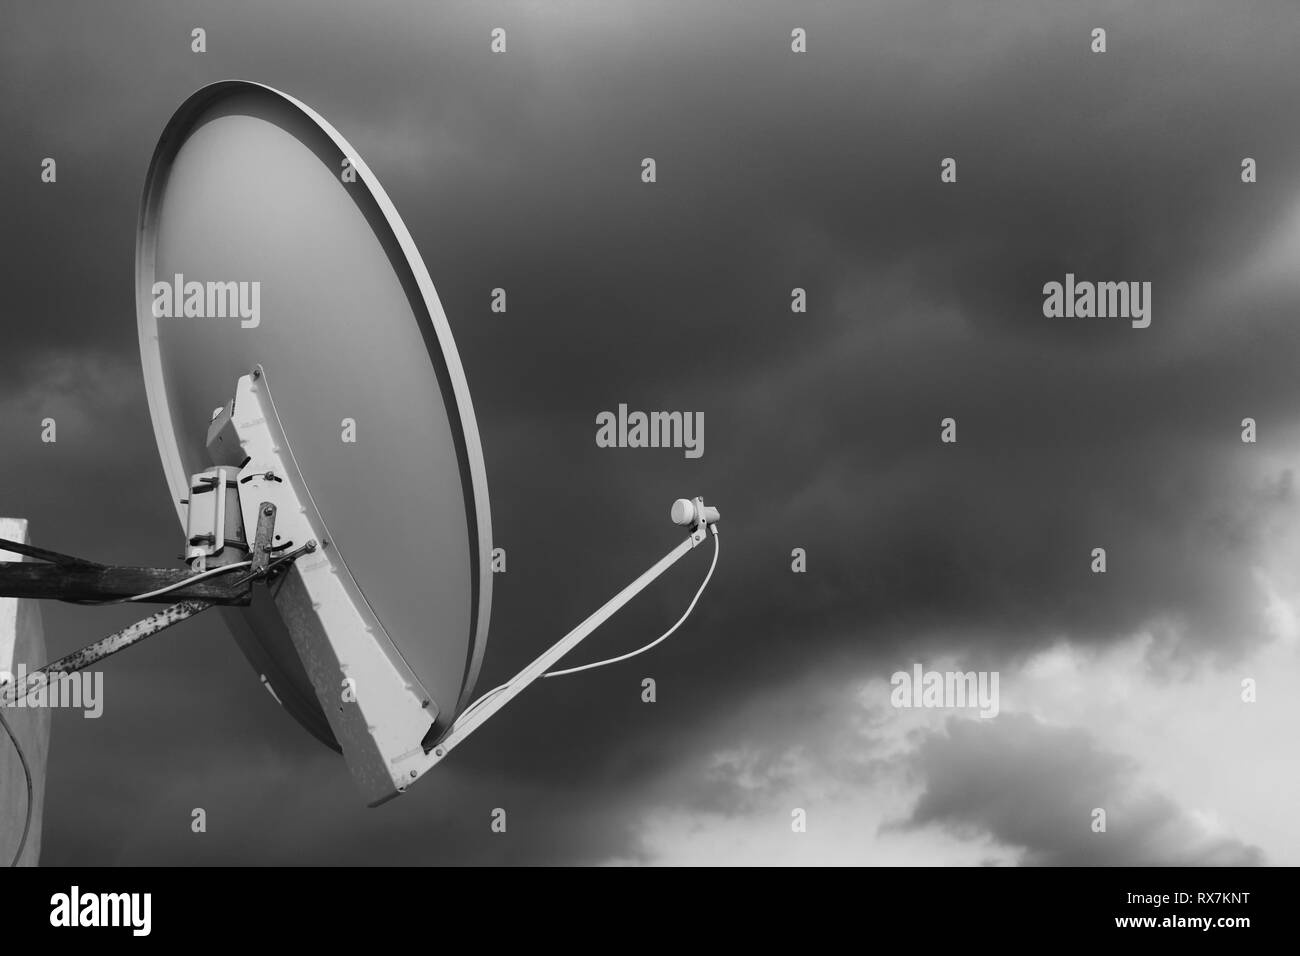 Black and white satellite dish on a rooftop against a cloudy moody sky background - Stock Image